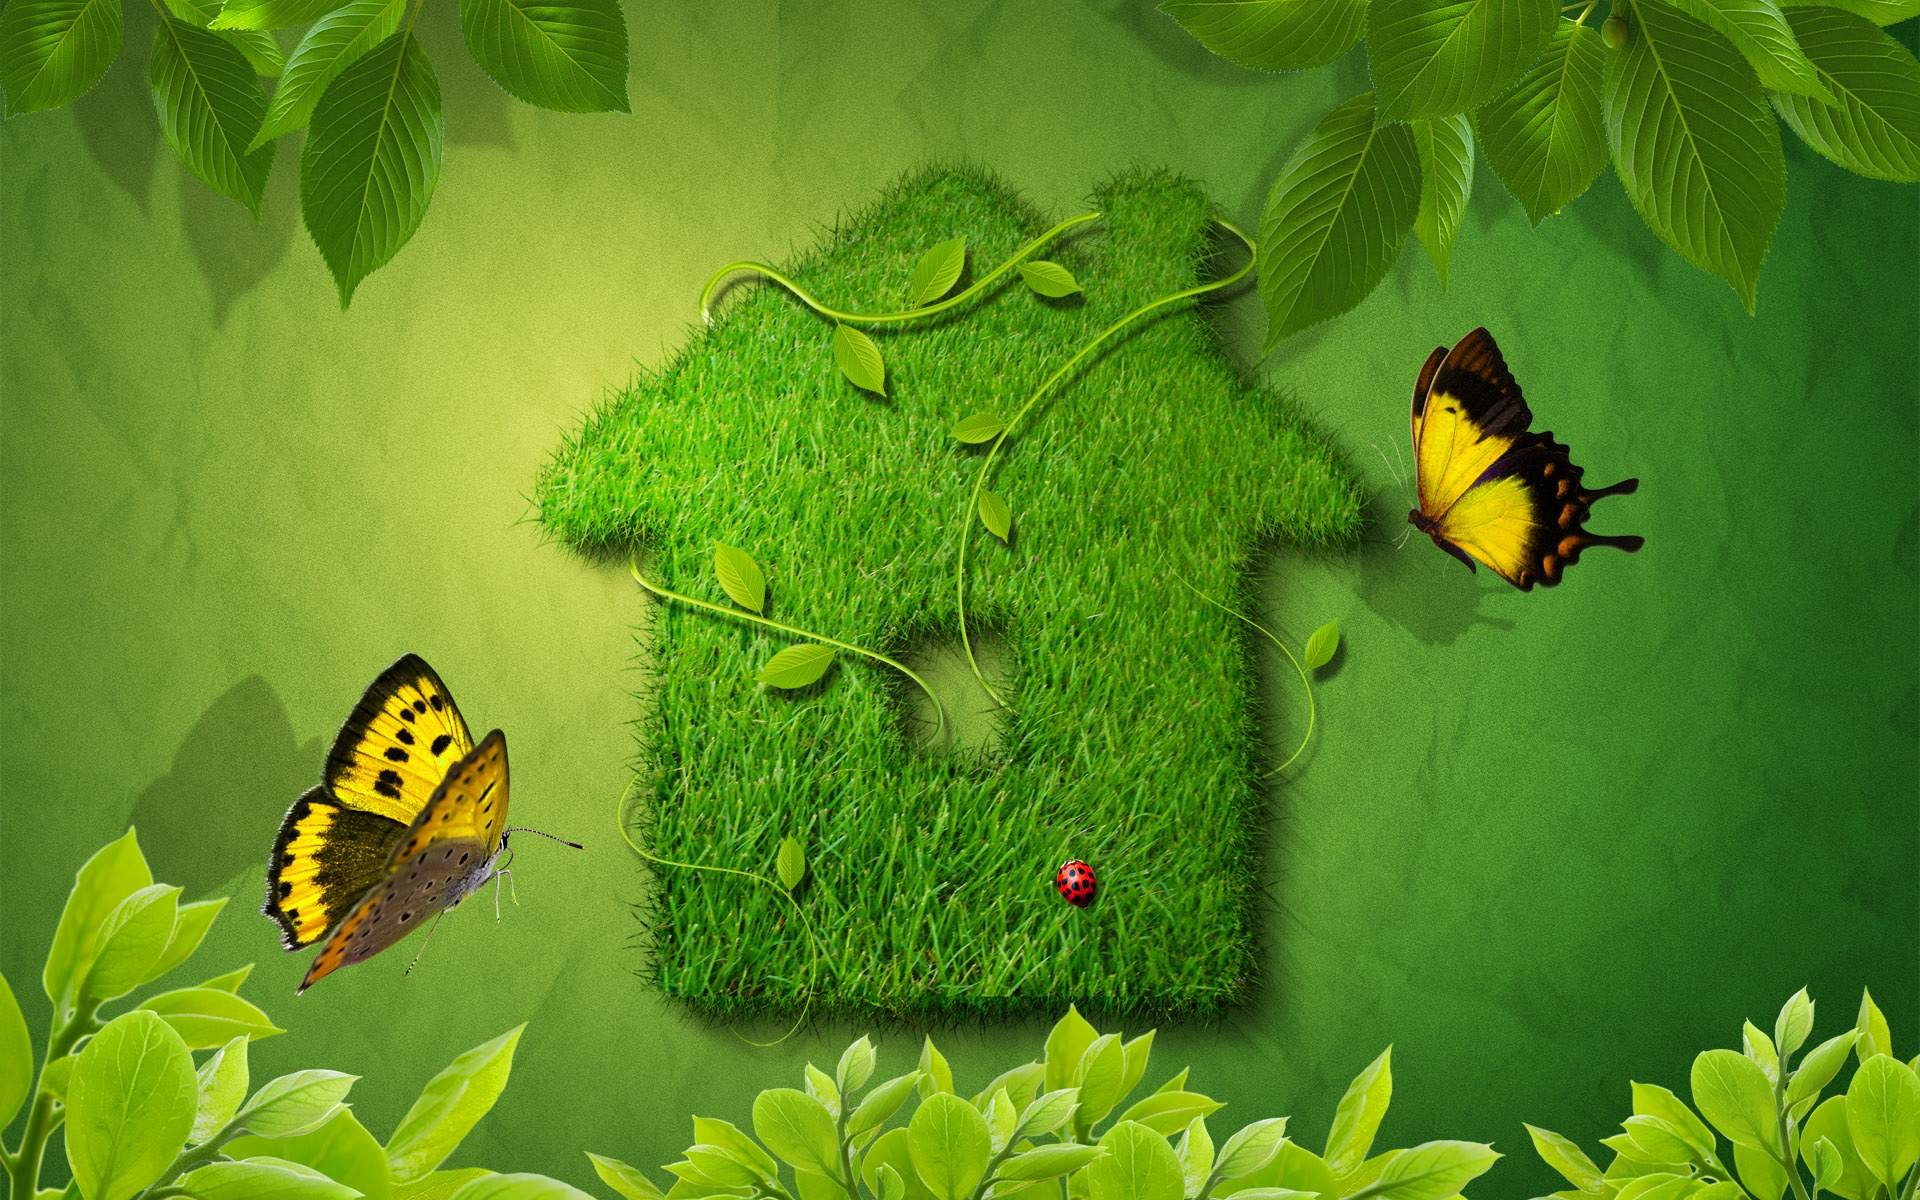 Design Green House Nature Wallpapers For Desktop Backgrounds HD 1920x1200